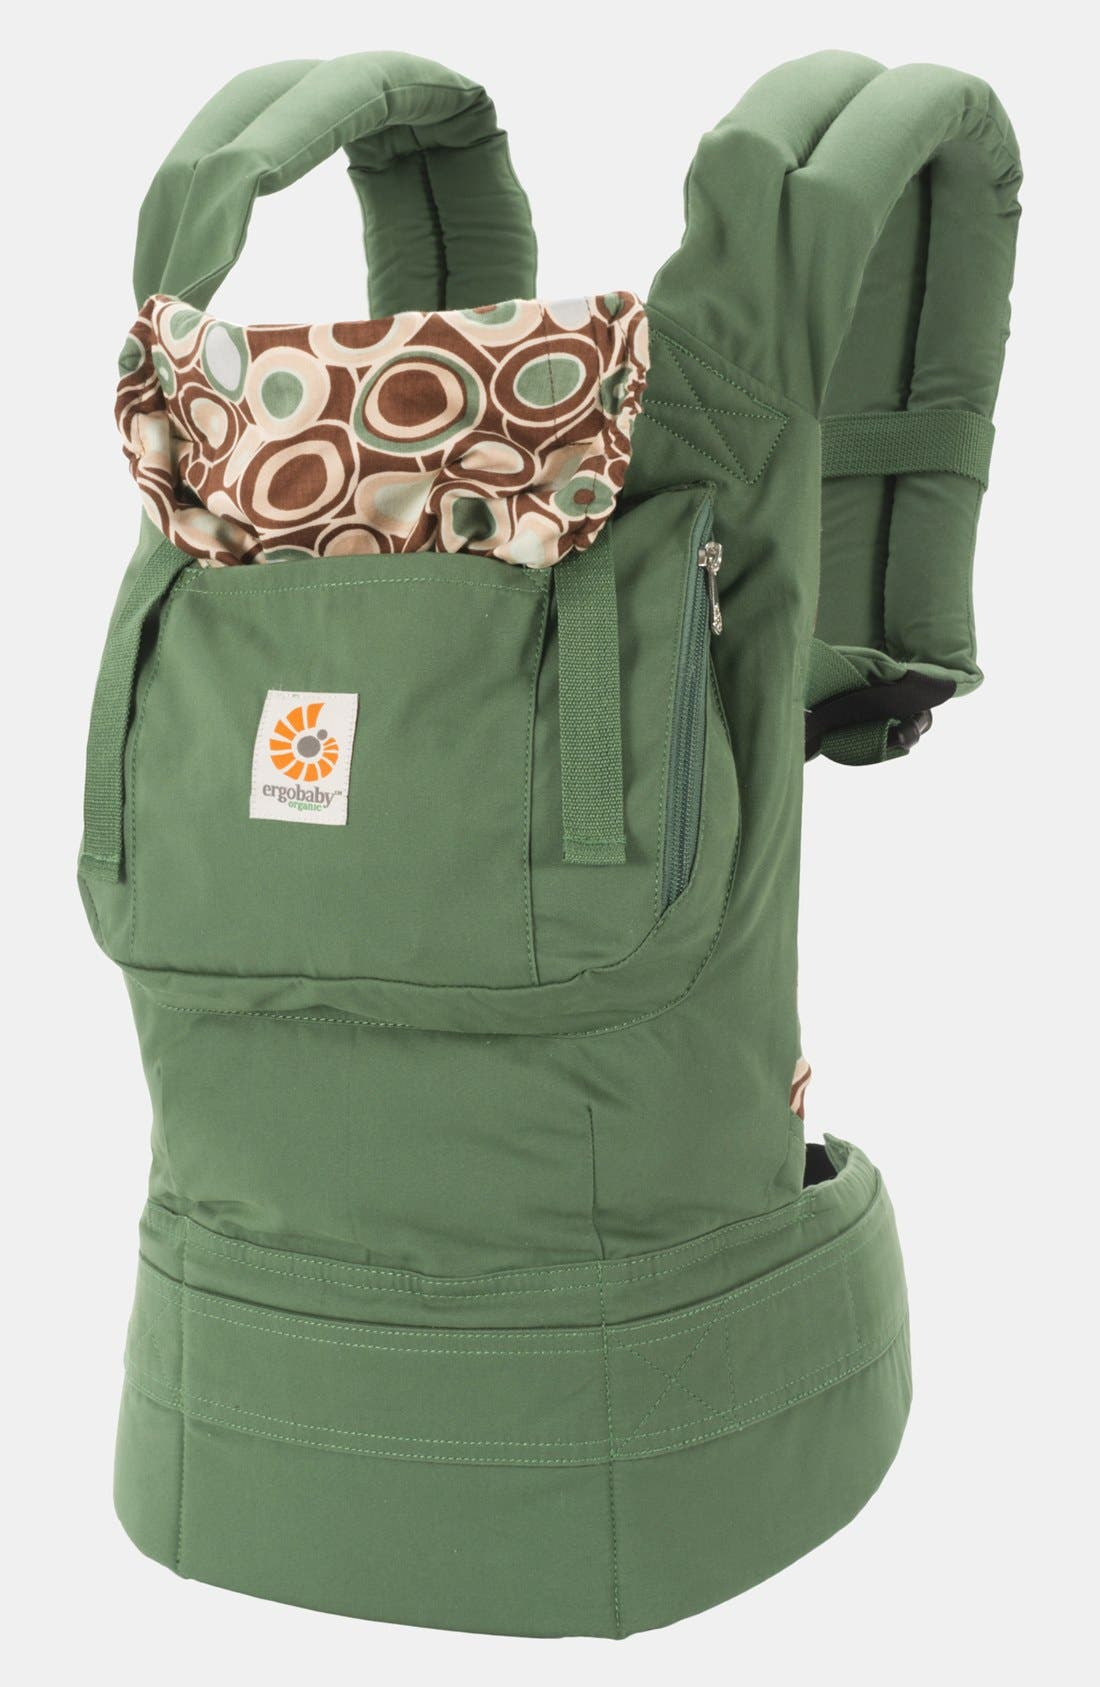 Alternate Image 1 Selected - ERGObaby Organic Cotton Baby Carrier